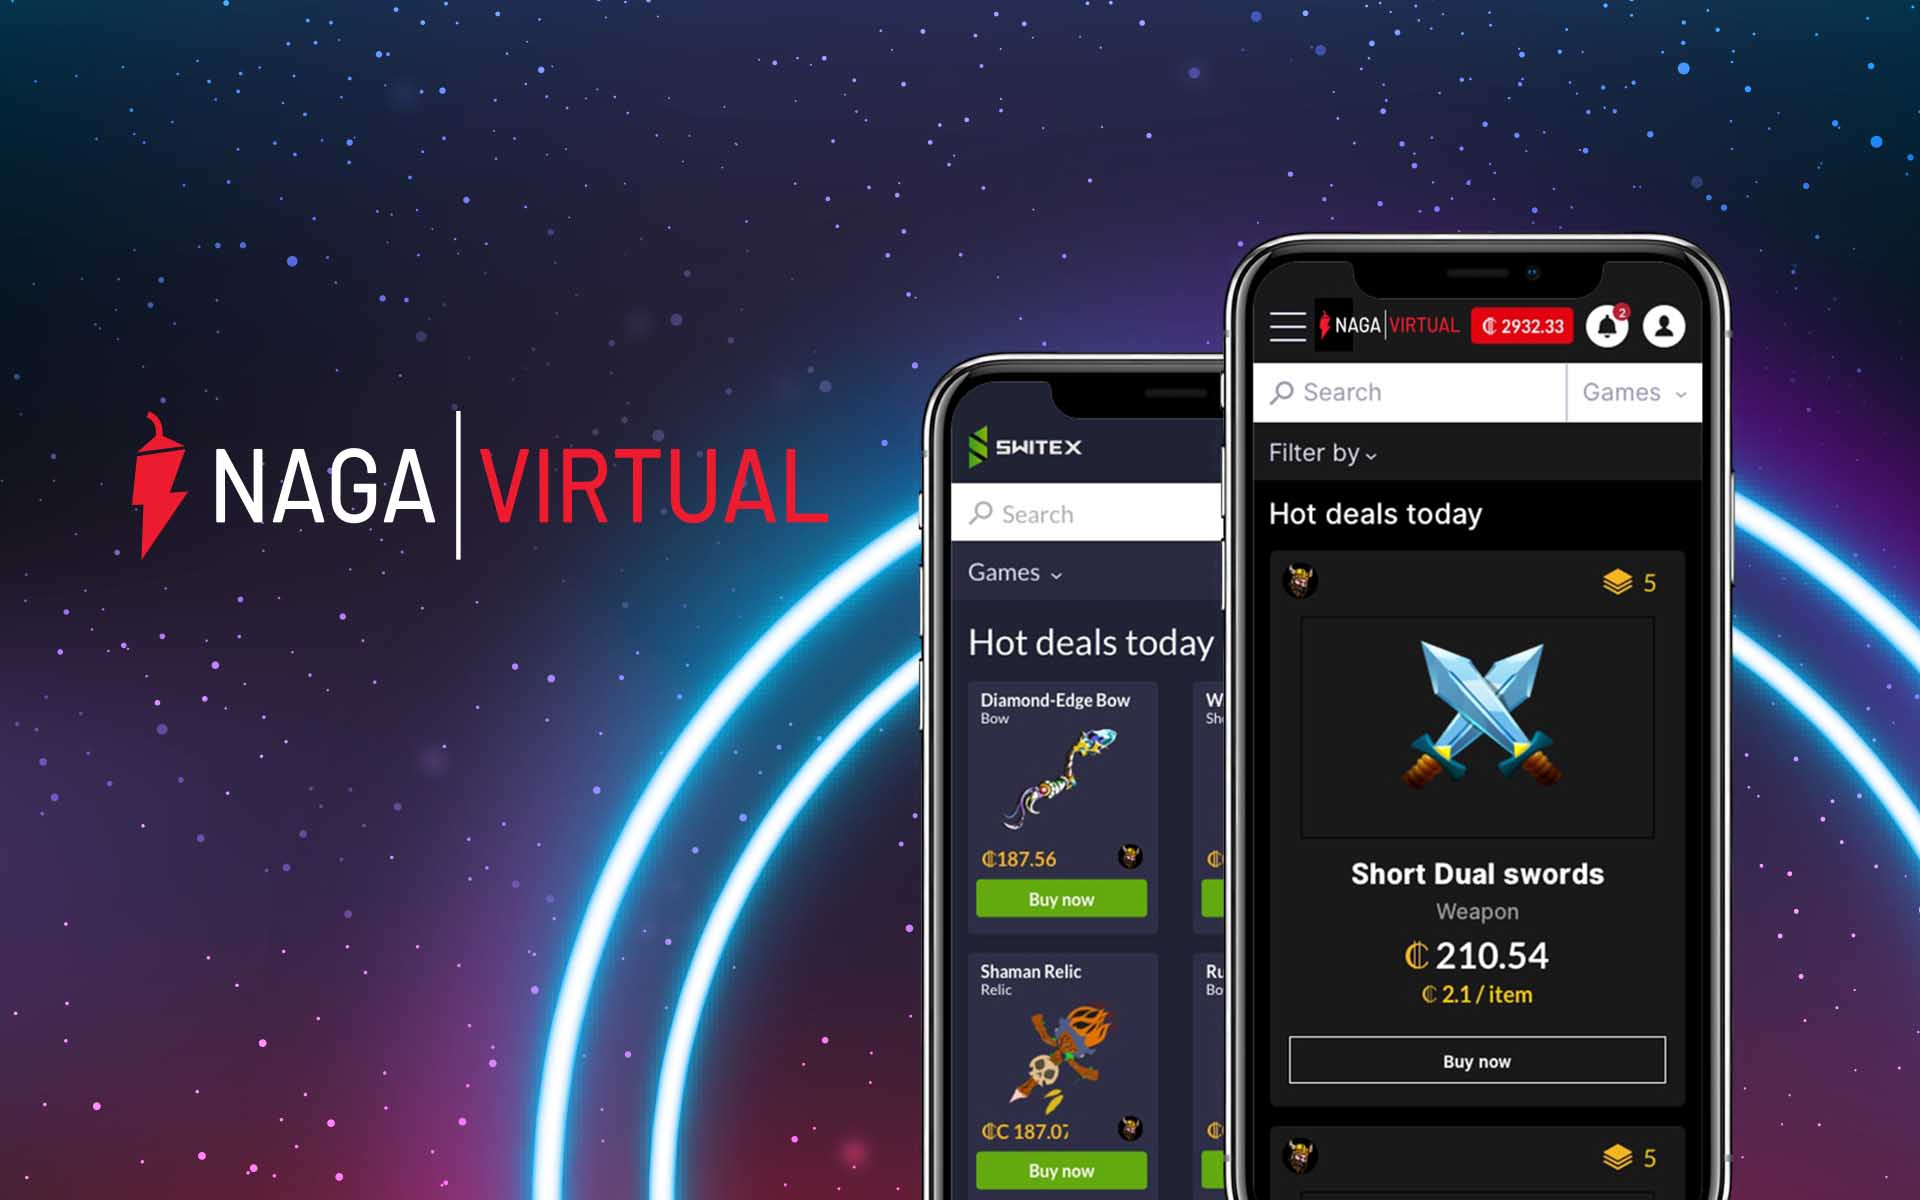 Switex Becomes NAGA VIRTUAL